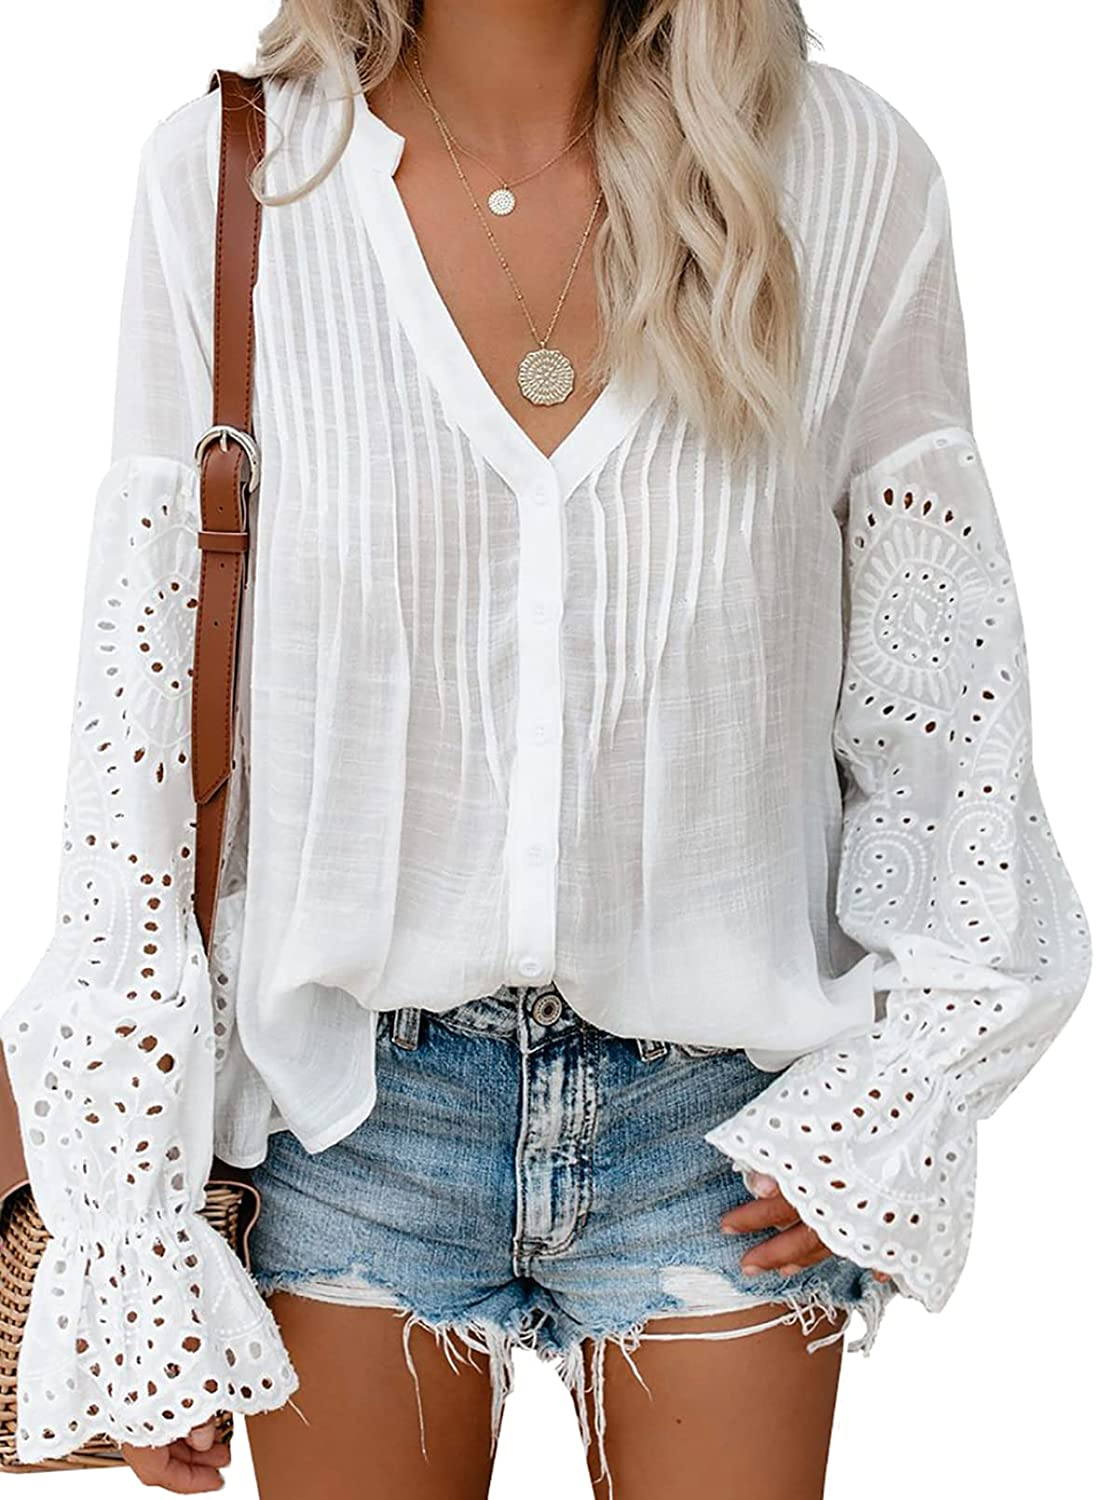 Biucly Womens Casual Solid V Neck Lace Crochet Button Down Bell Sleeve Shirts Tops Loose Blouses